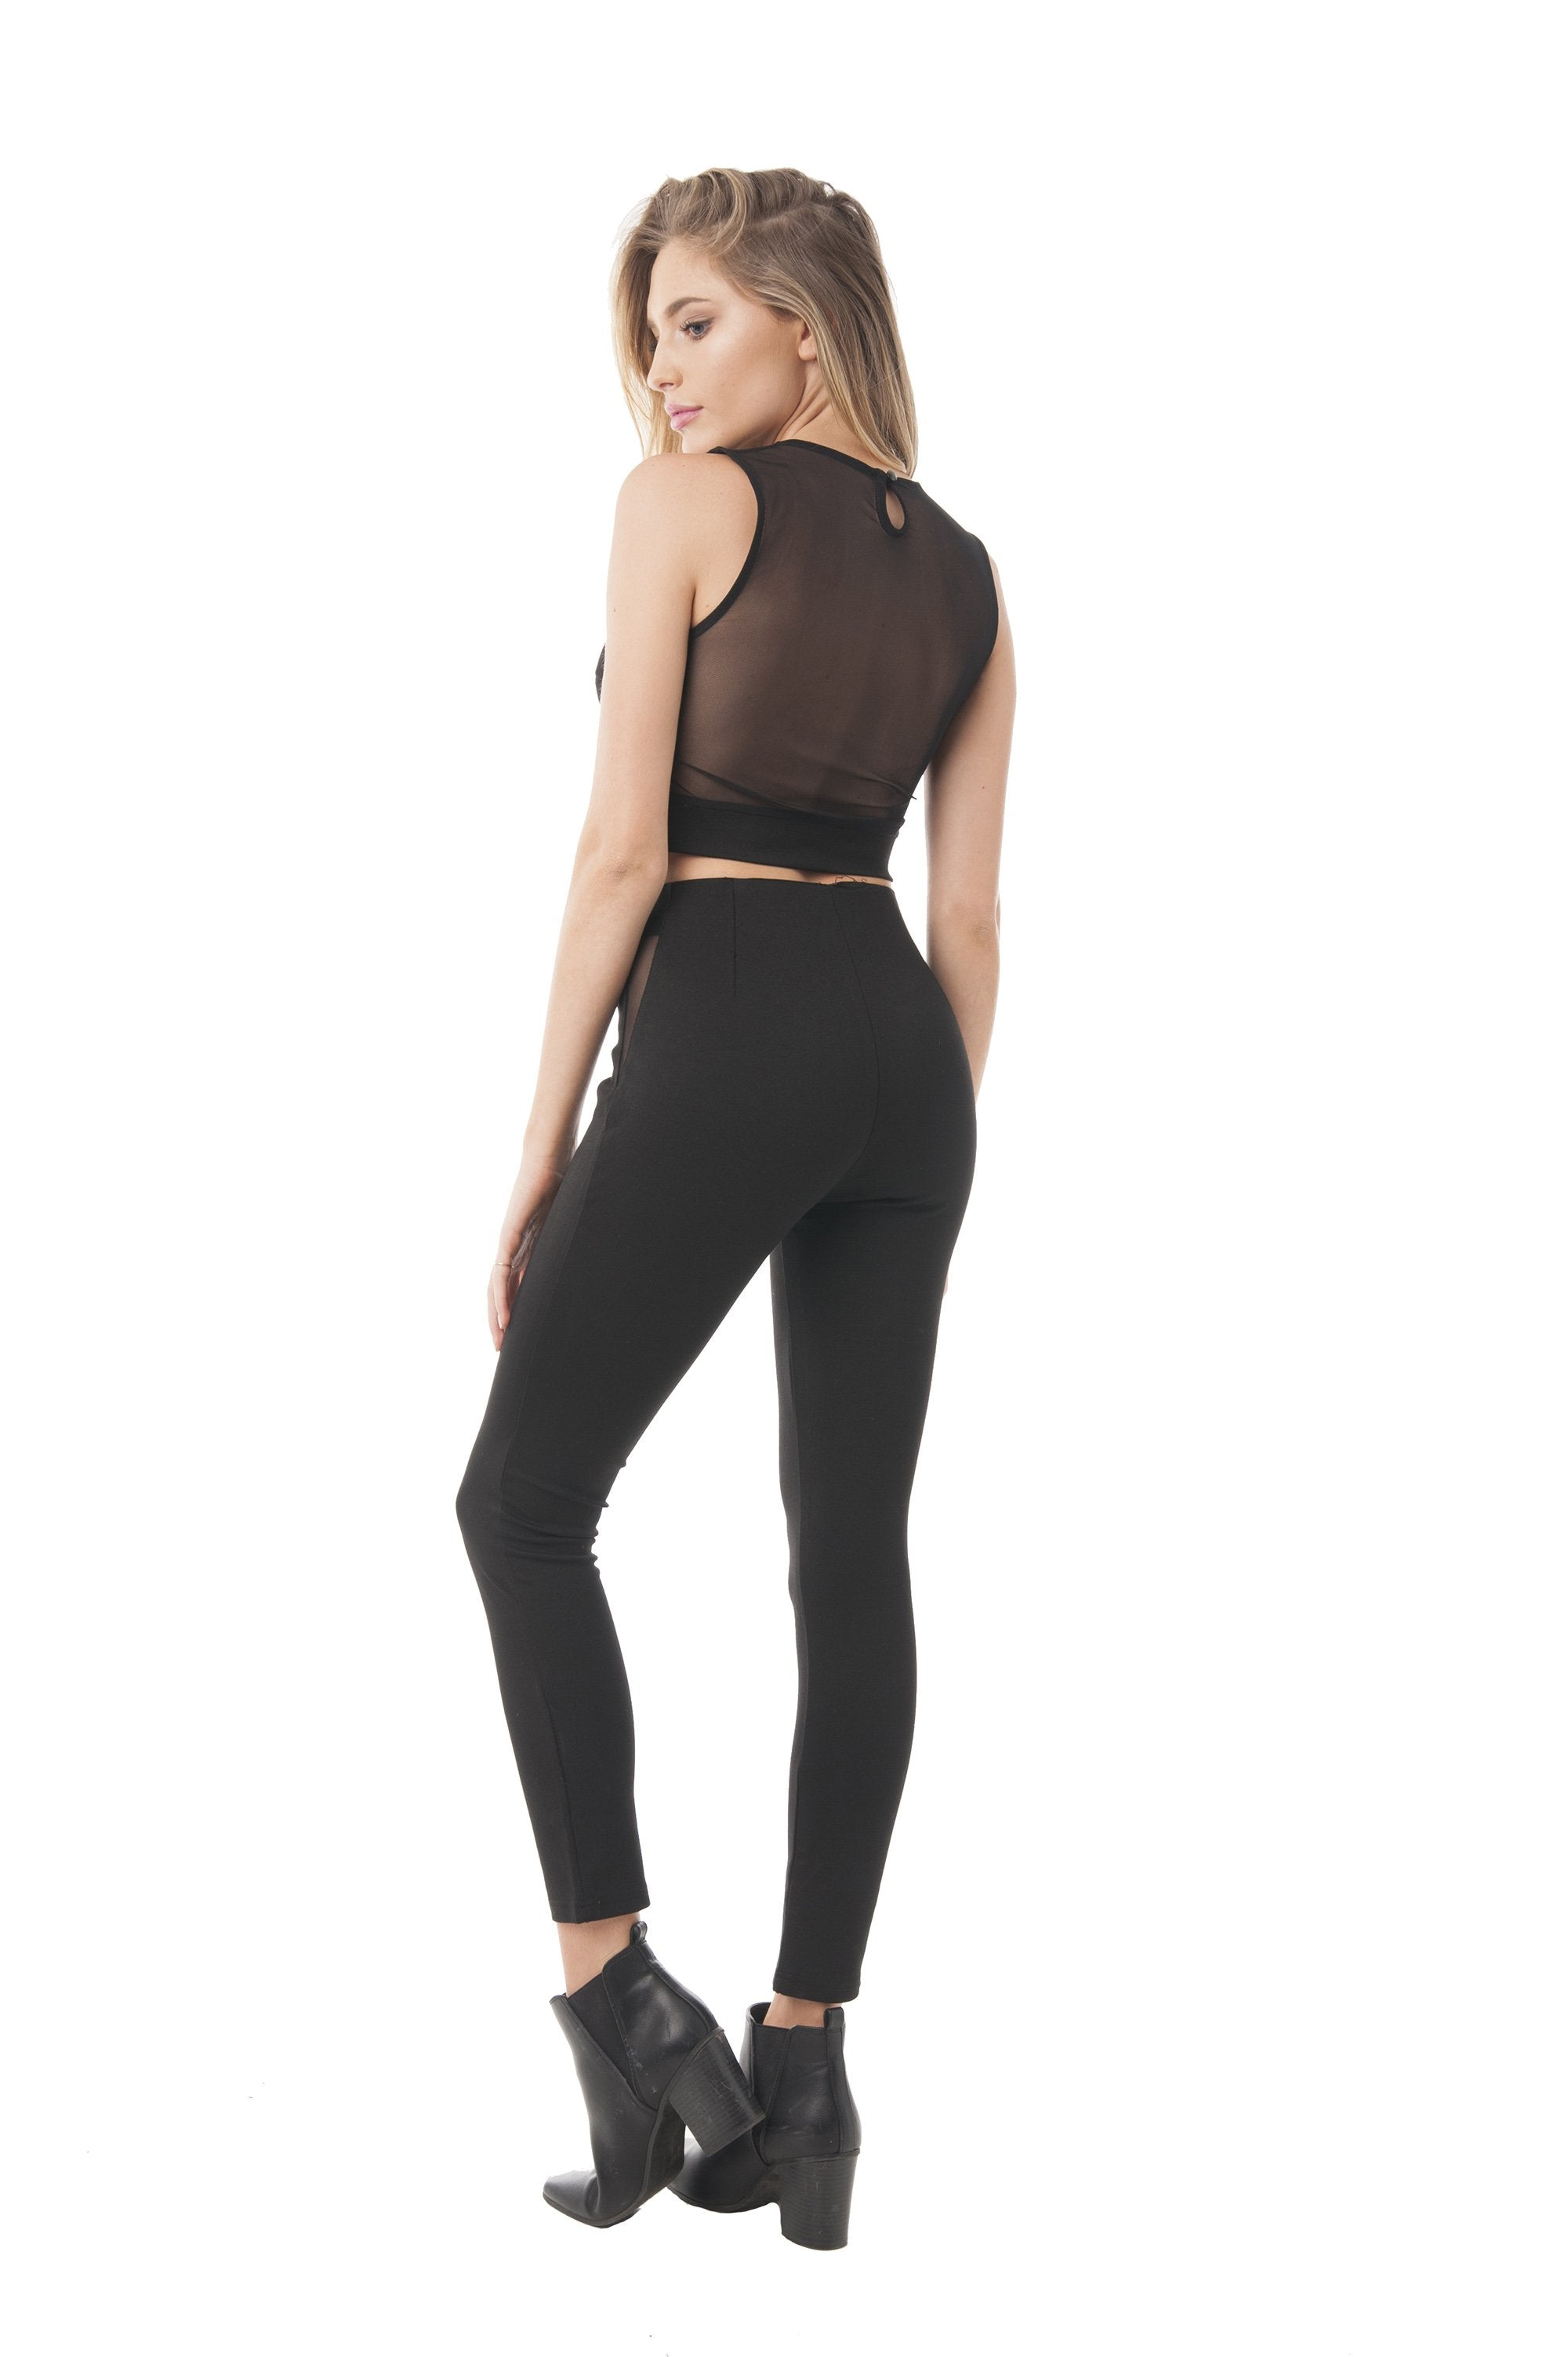 Khanomak Sleeveless Crop Top with Open Back and Deep V Mesh